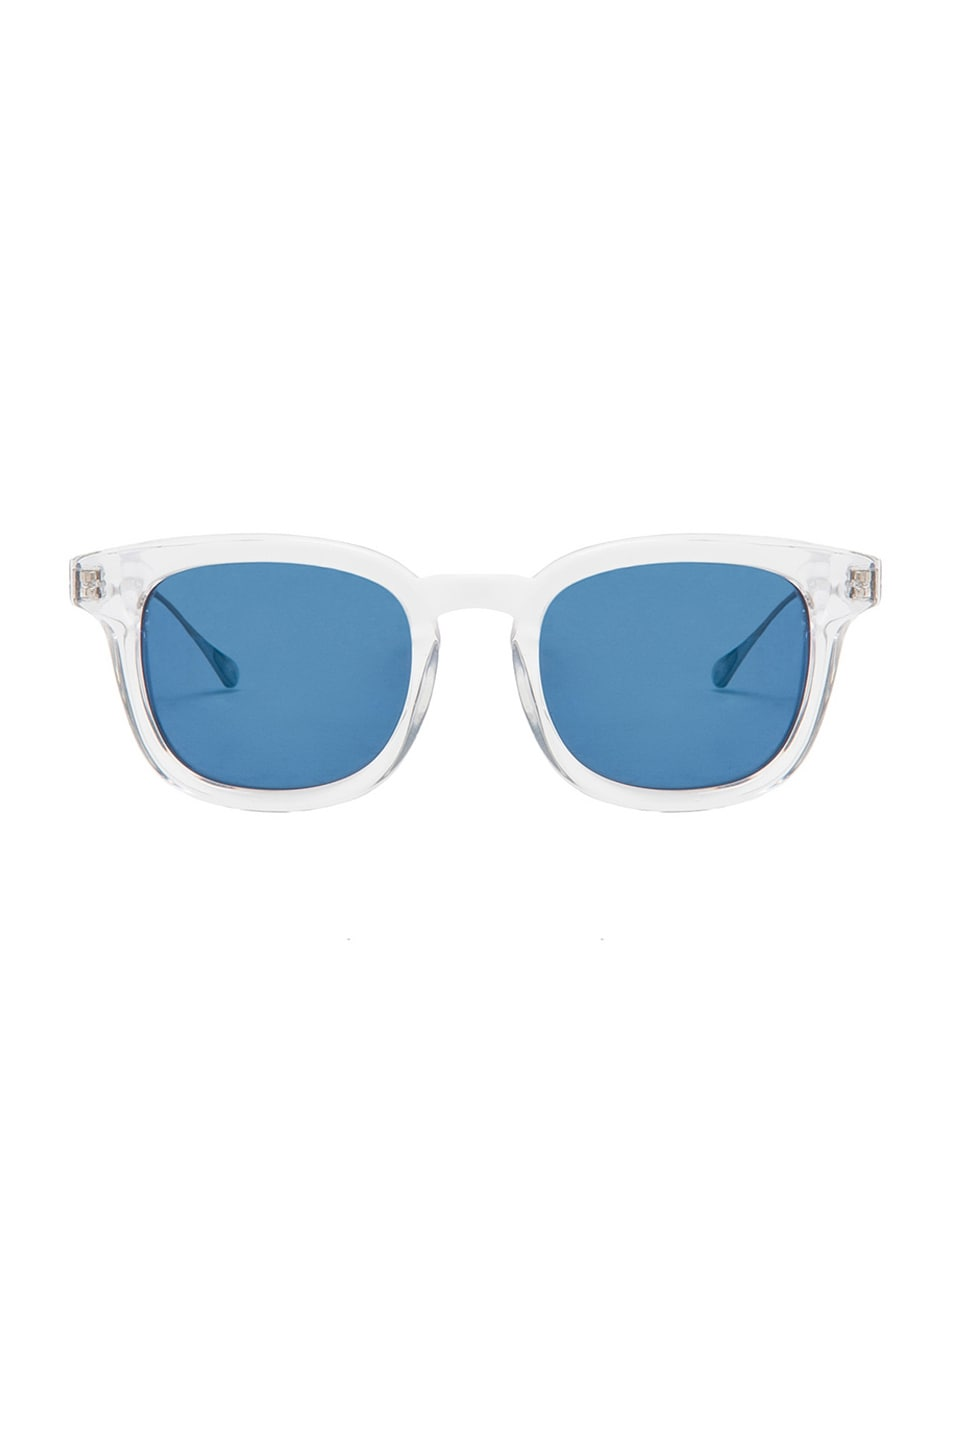 ac37dea216 Image 1 of Oliver Peoples WEST Cabrillo Polarized Sunglasses in Crystal    Malibu Mirror